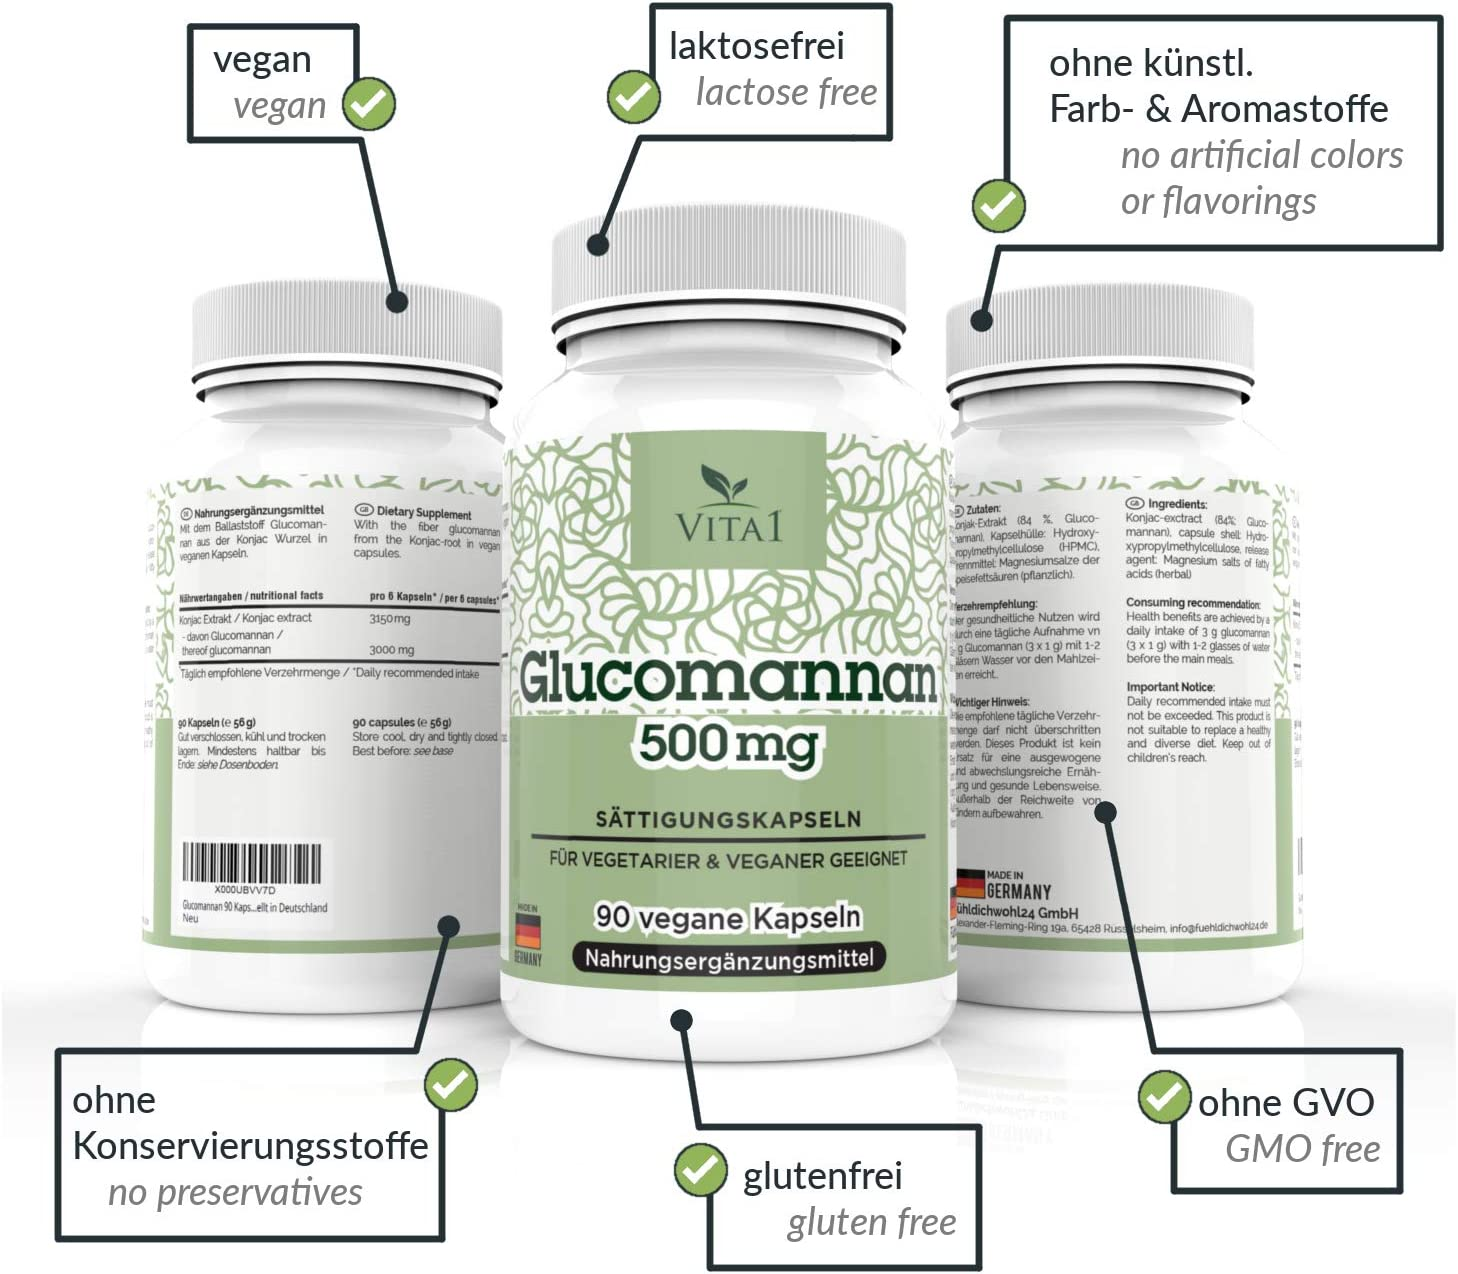 VITA1 Glucomannan 500mg aE Appetite suppressant Capsules 2-Weeks-Supply aE Vegan Appetite Reducer from The Konjac Root aE Made in Germany